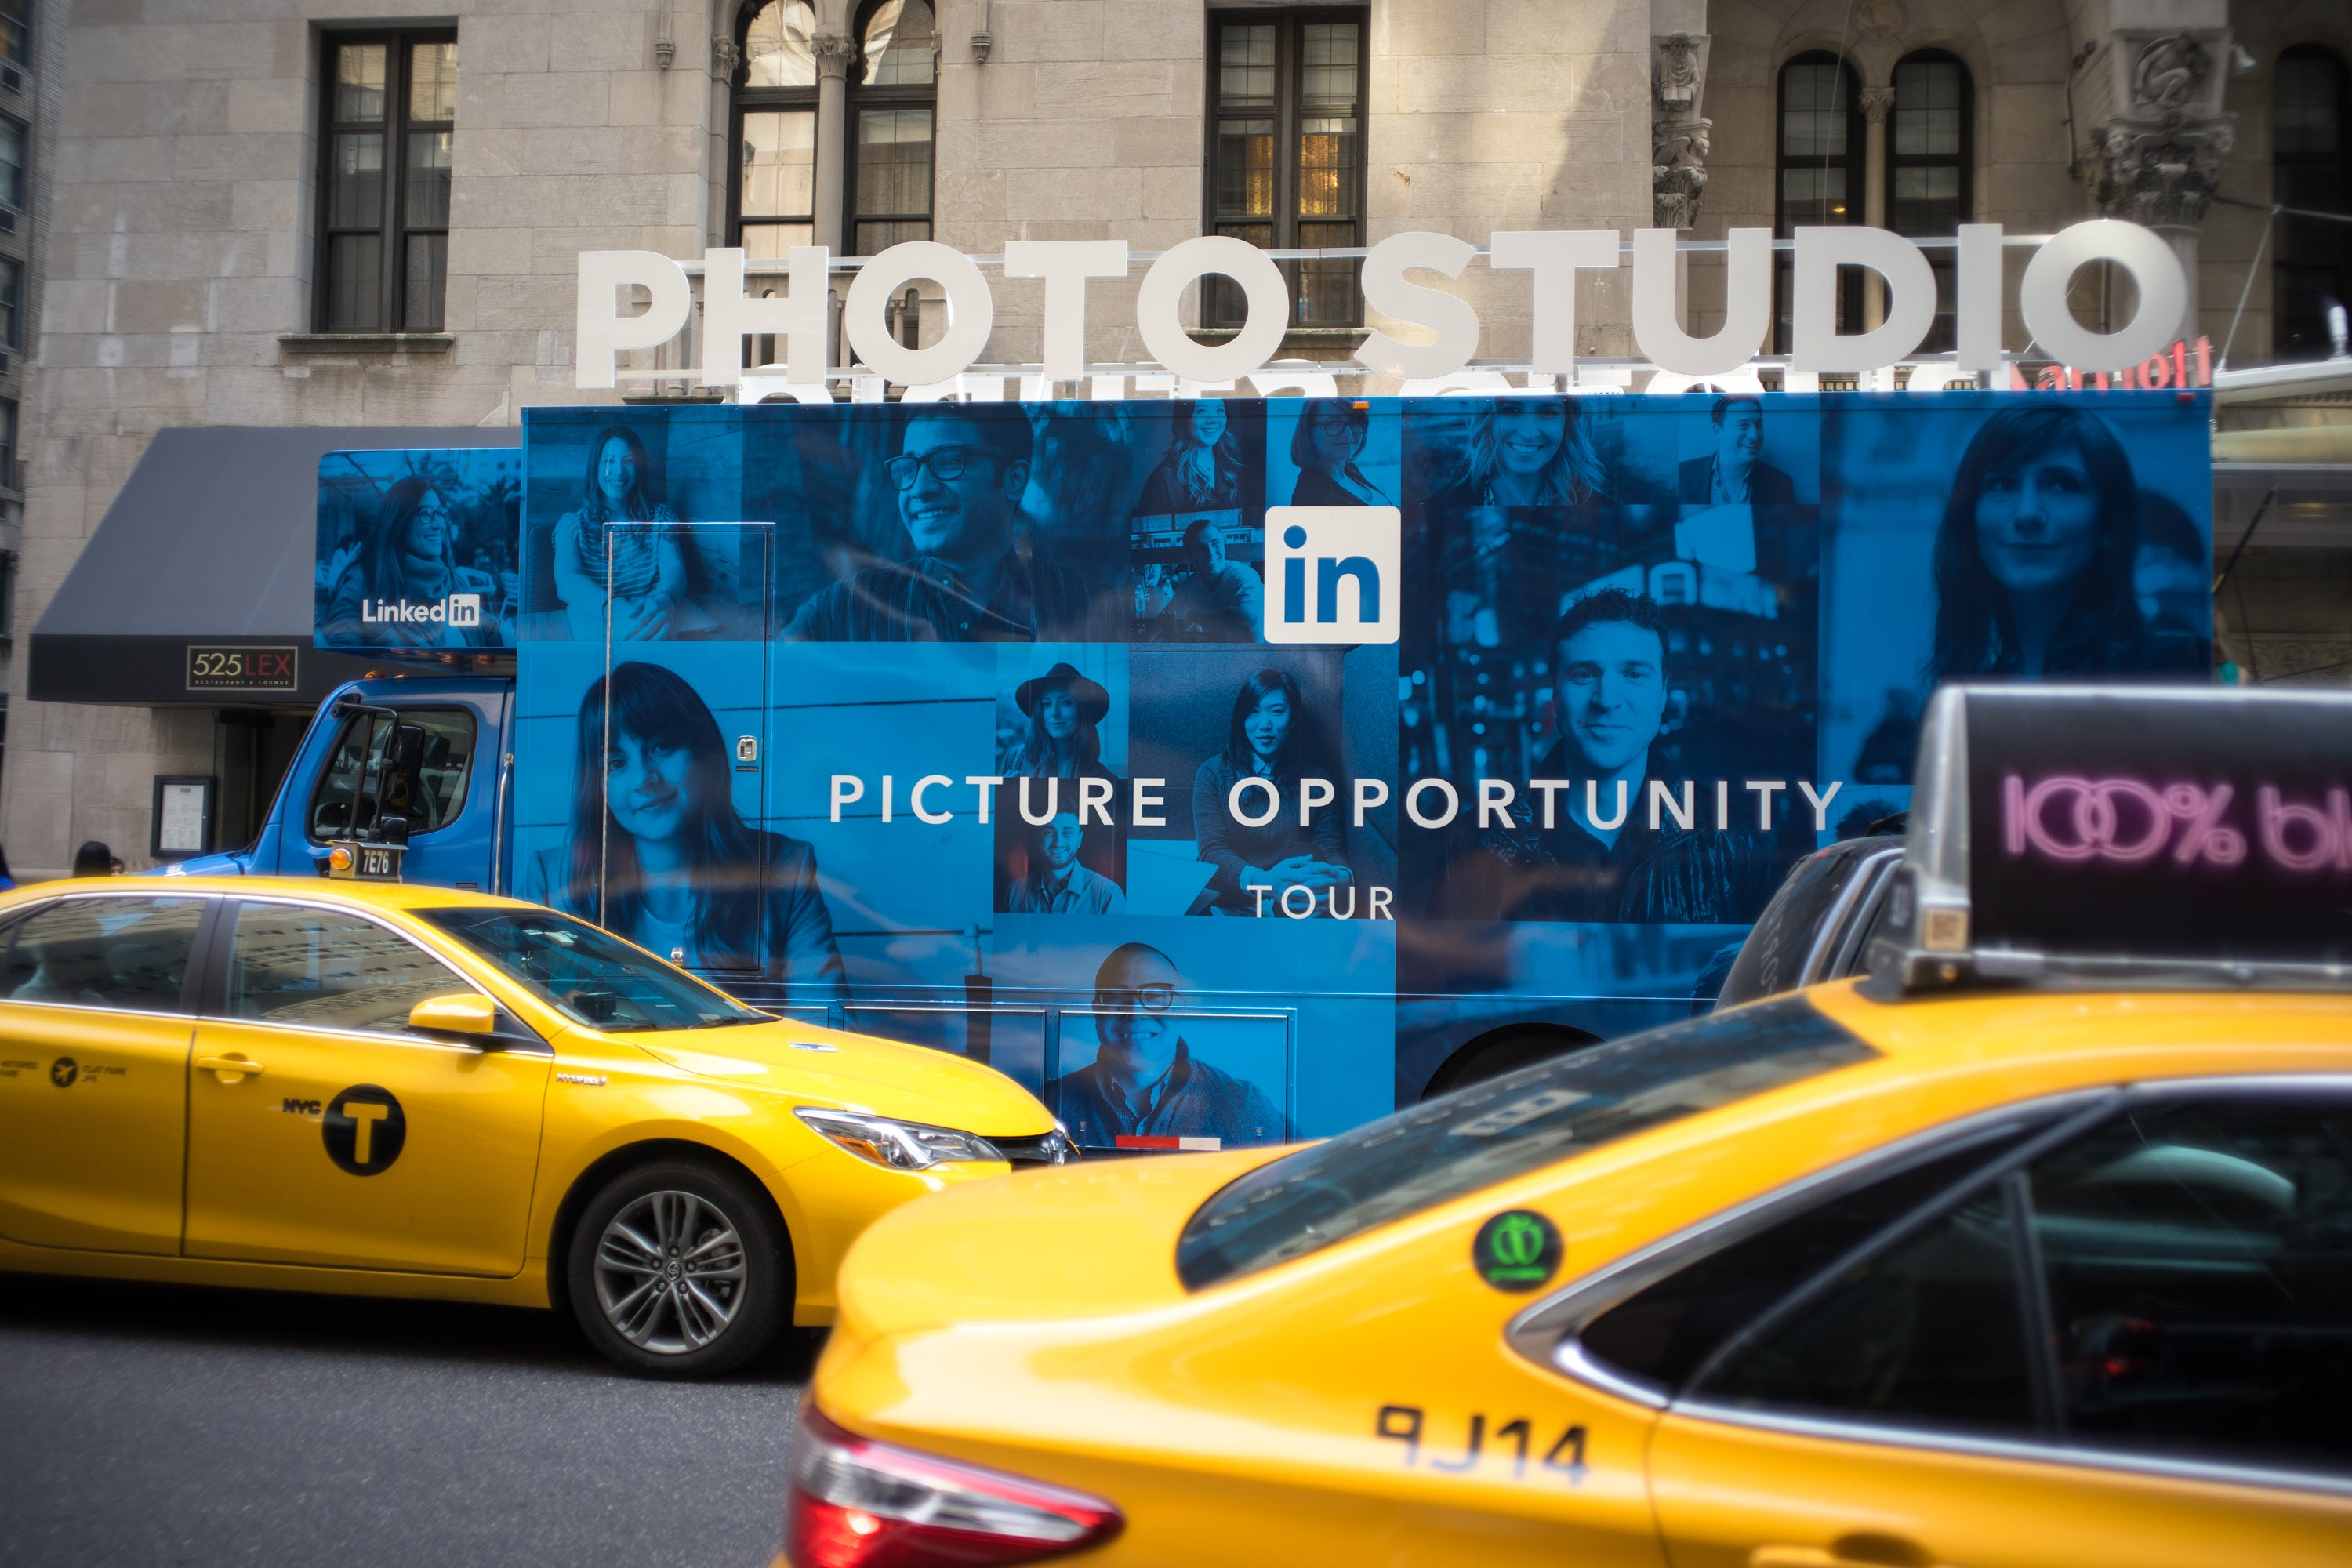 LinkedIn Picture Opportunity Tour Visits New York City